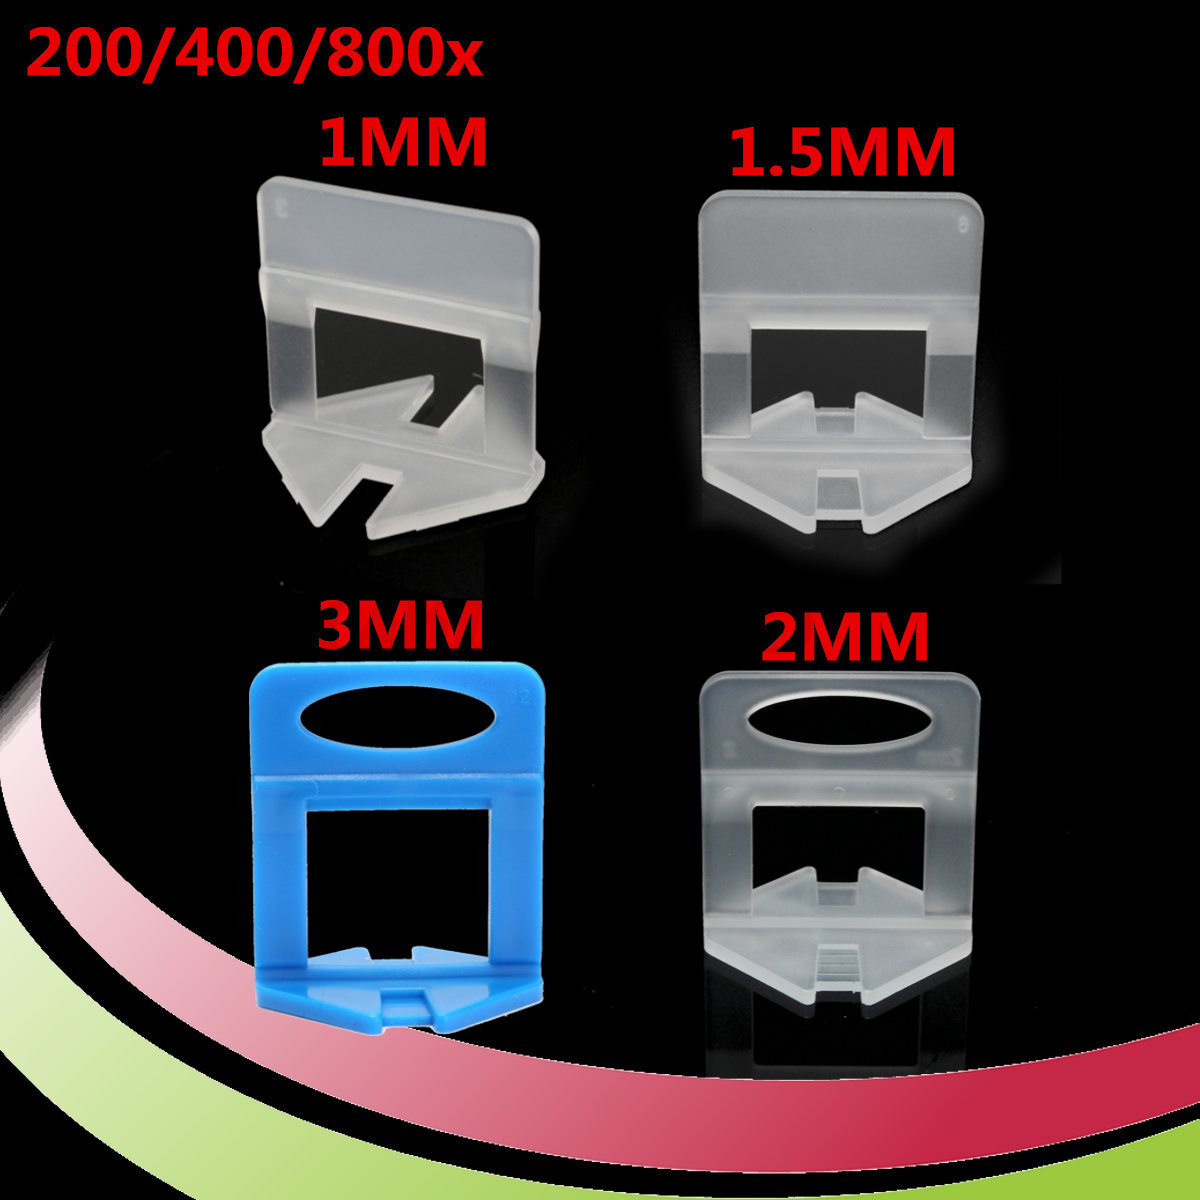 200400800pcs tile leveling system levelling clips for wall floor image is loading 200 400 800pcs tile leveling system levelling clips dailygadgetfo Image collections